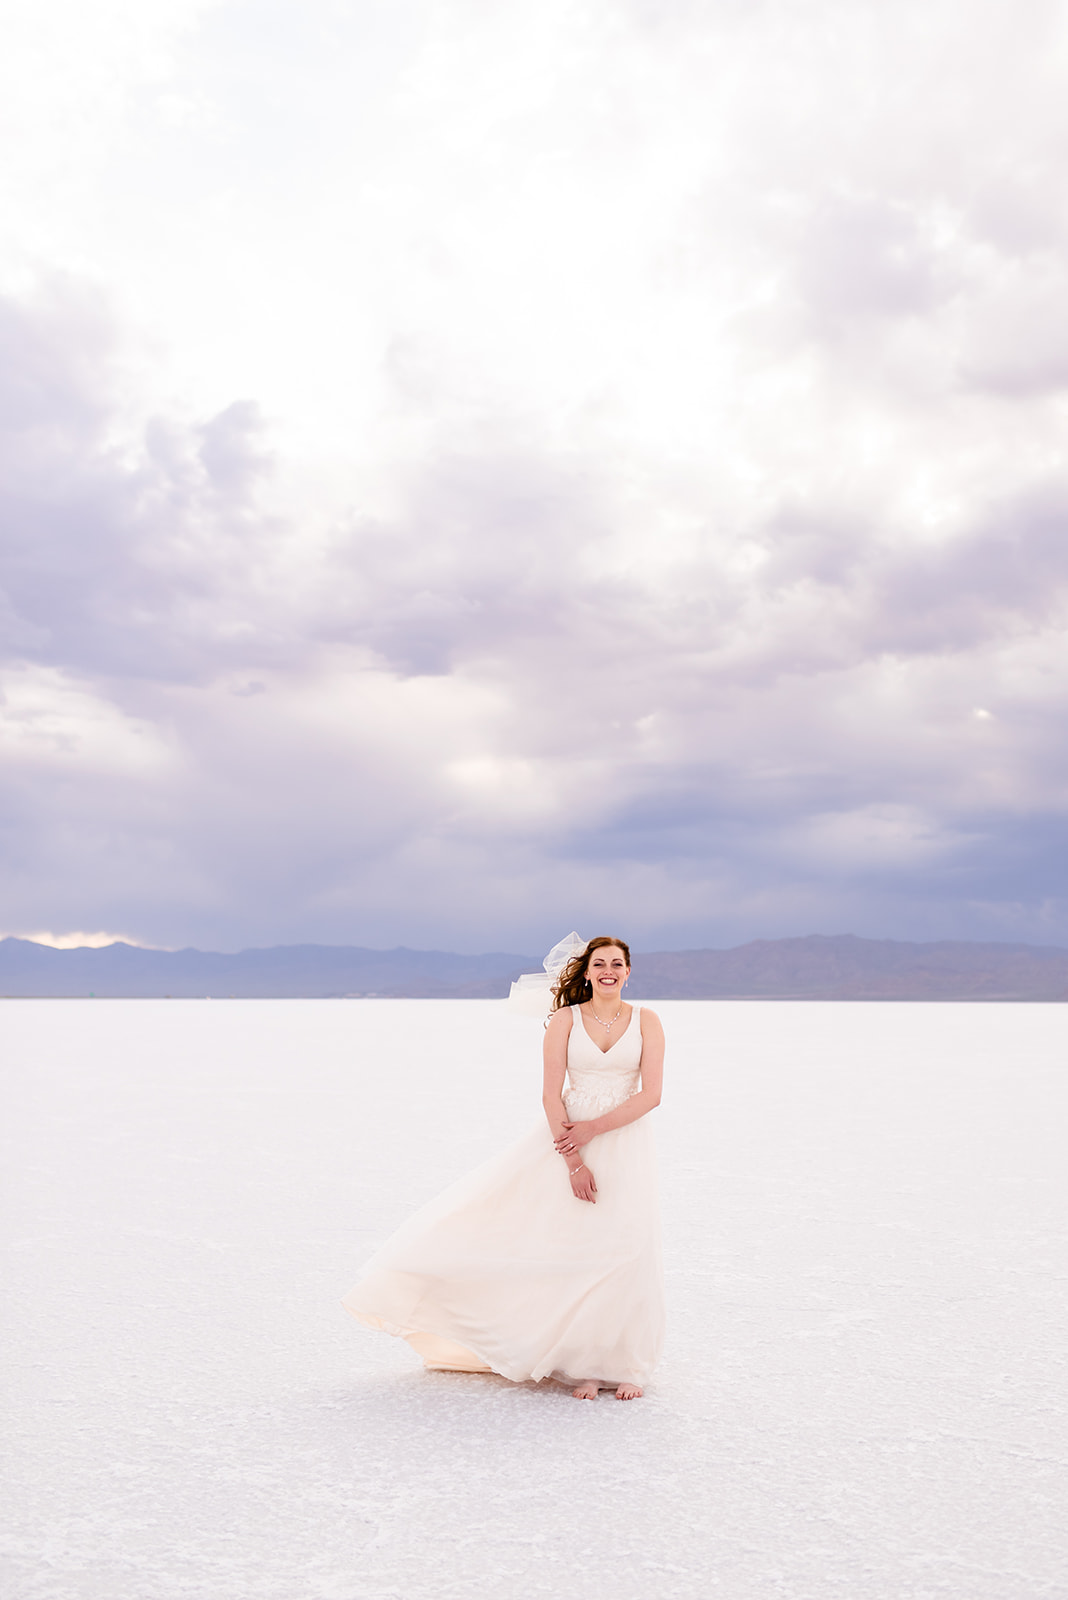 Laughing bridal portrait of Adri at the Bonneville Salt Falts in Utah. Taken by Coley Cook Photography.